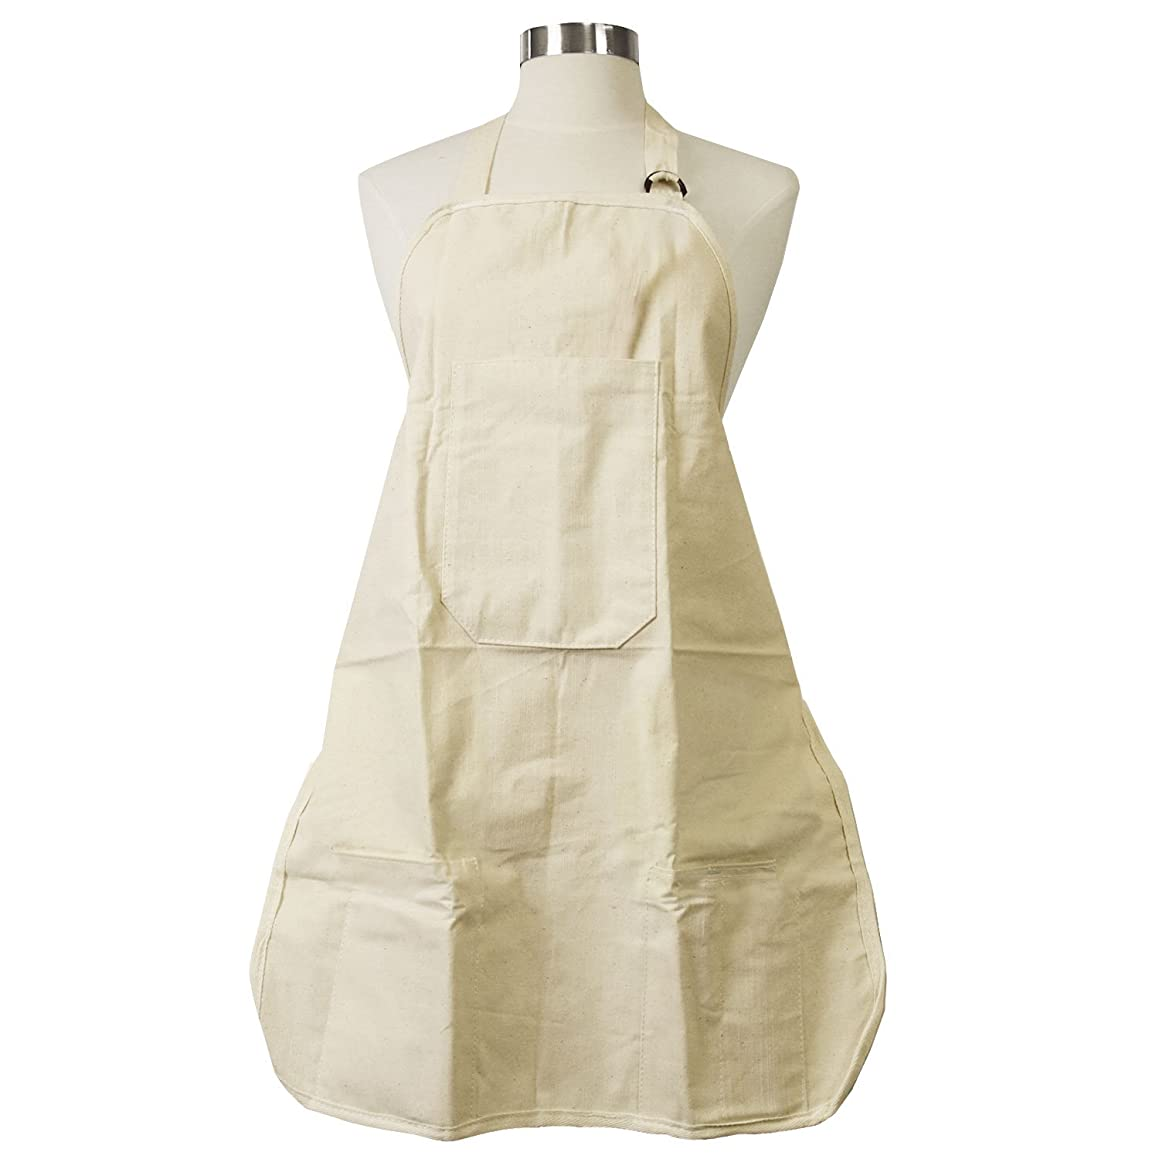 US Art Supply Large Canvas Adjustable Artist Apron - Size: 27